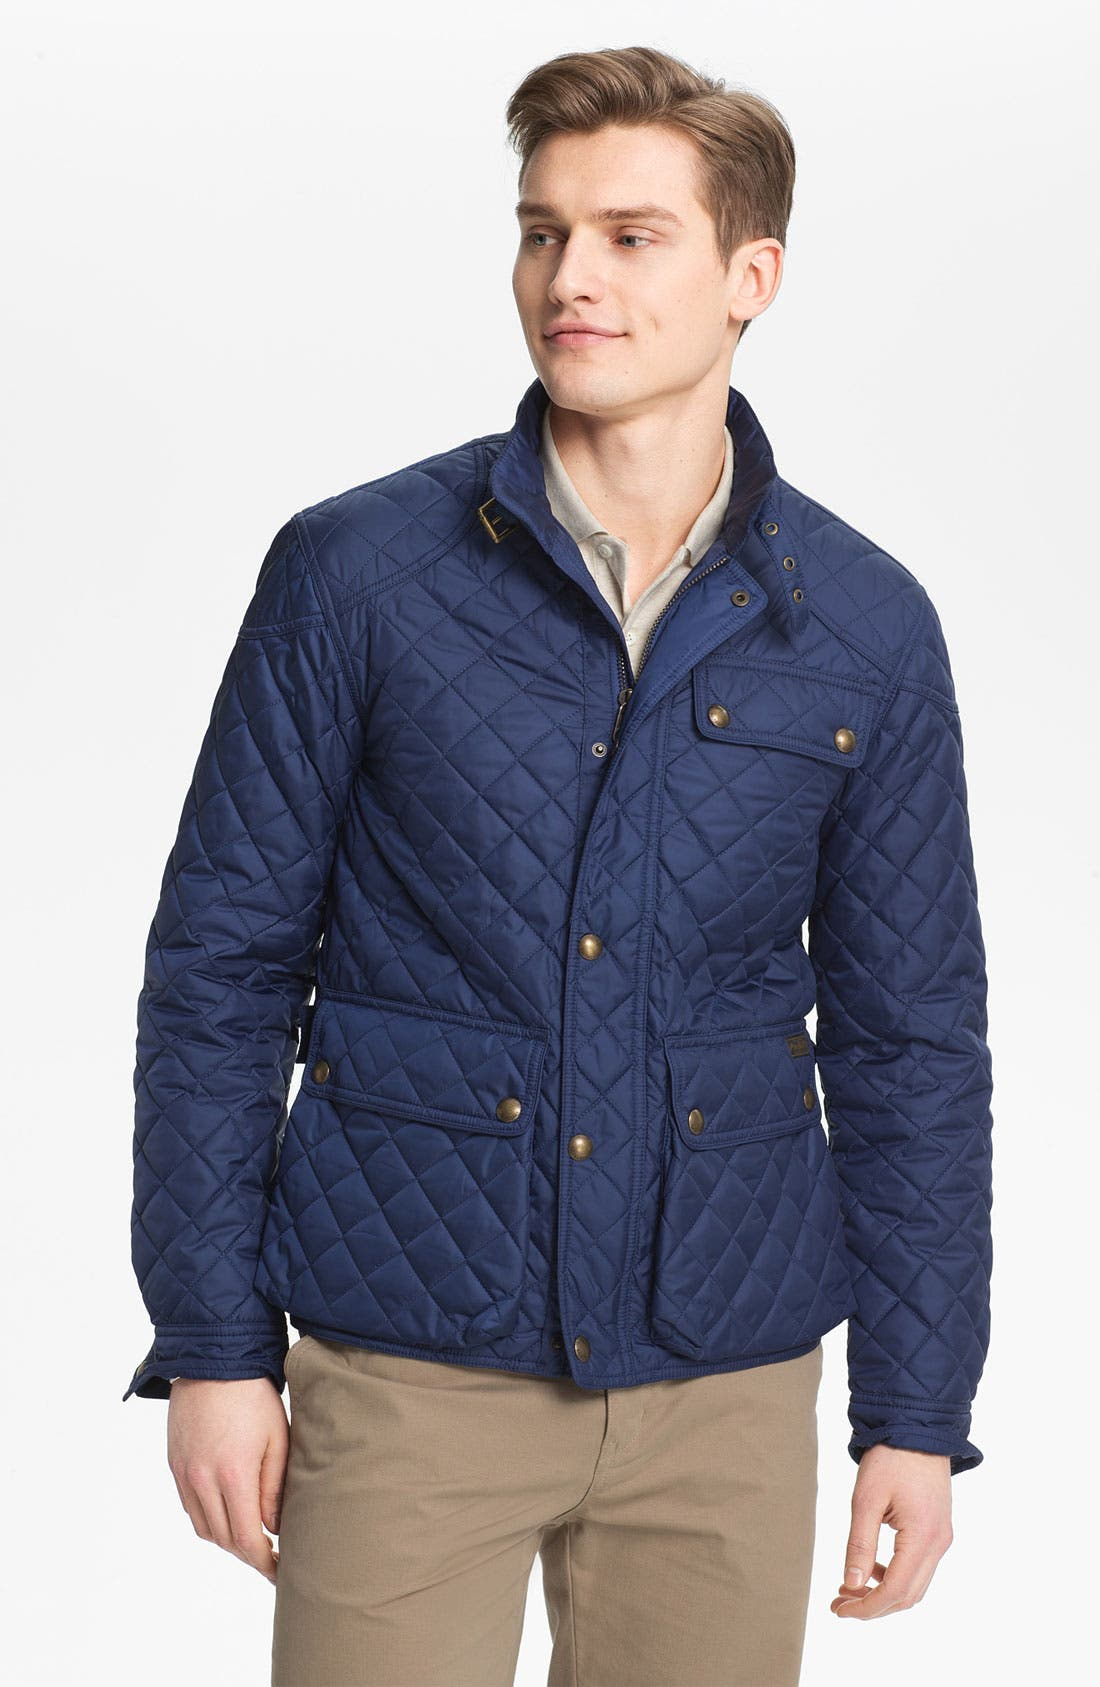 Alternate Image 1 Selected - Polo Ralph Lauren 'Cadwell' Quilted Bomber Jacket